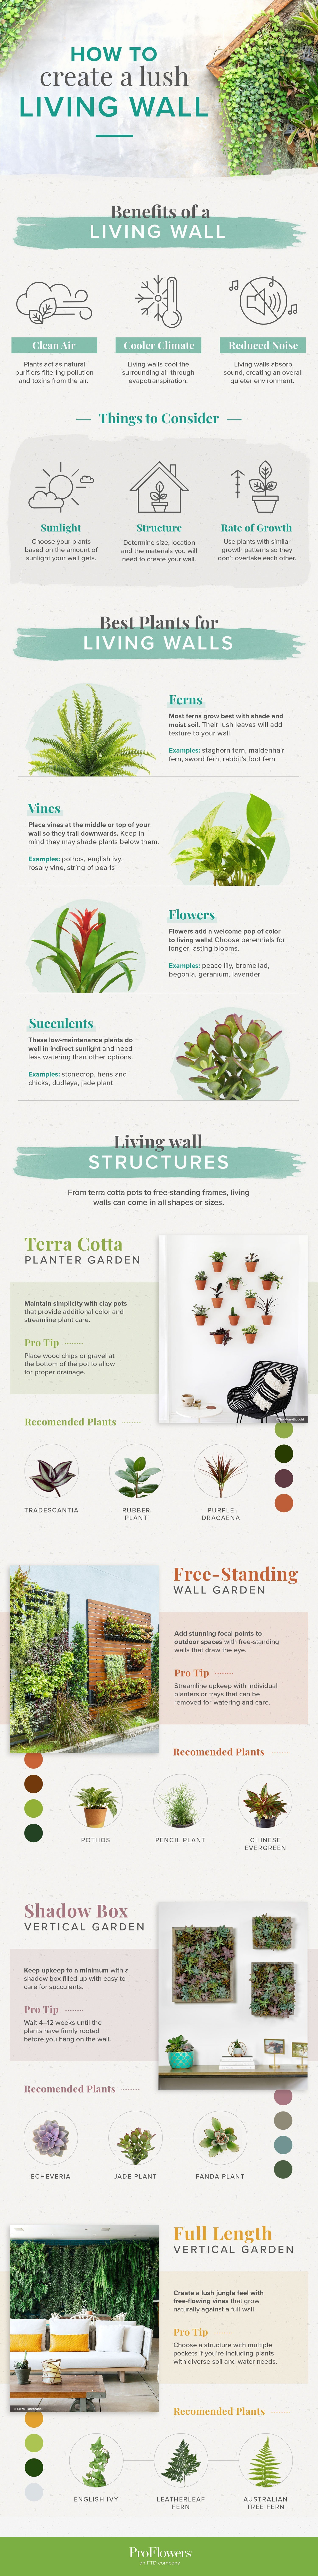 How to build a living wall - graphic